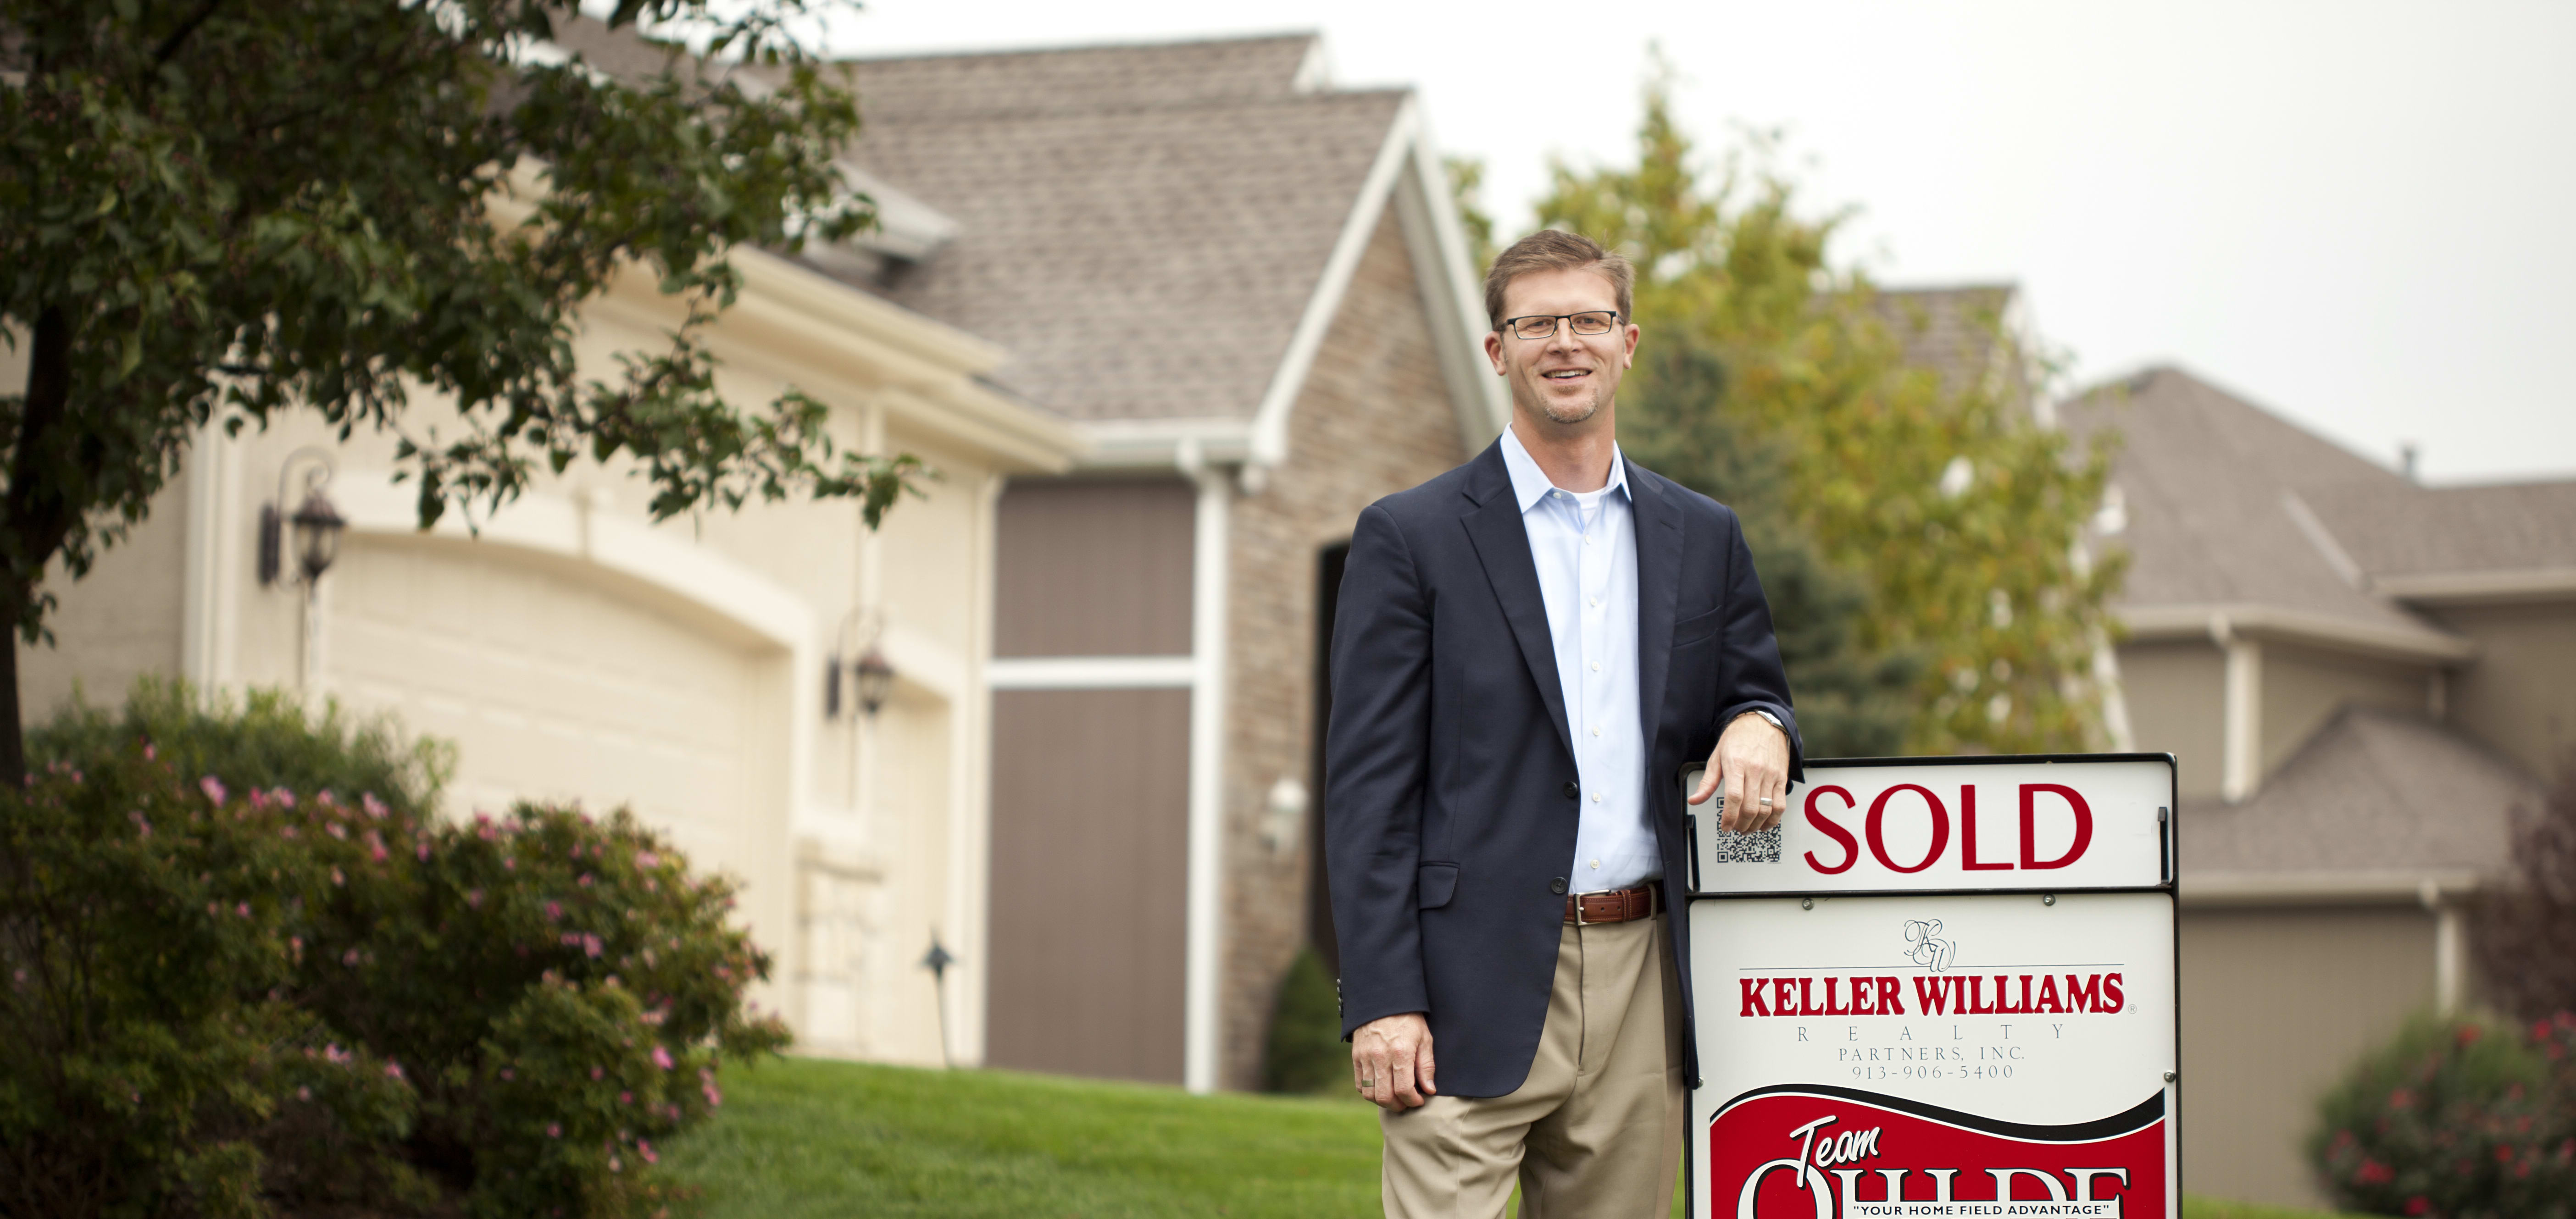 Team Ohlde   Real Estate Services in Overland Park Kansas and Surrounding  areas